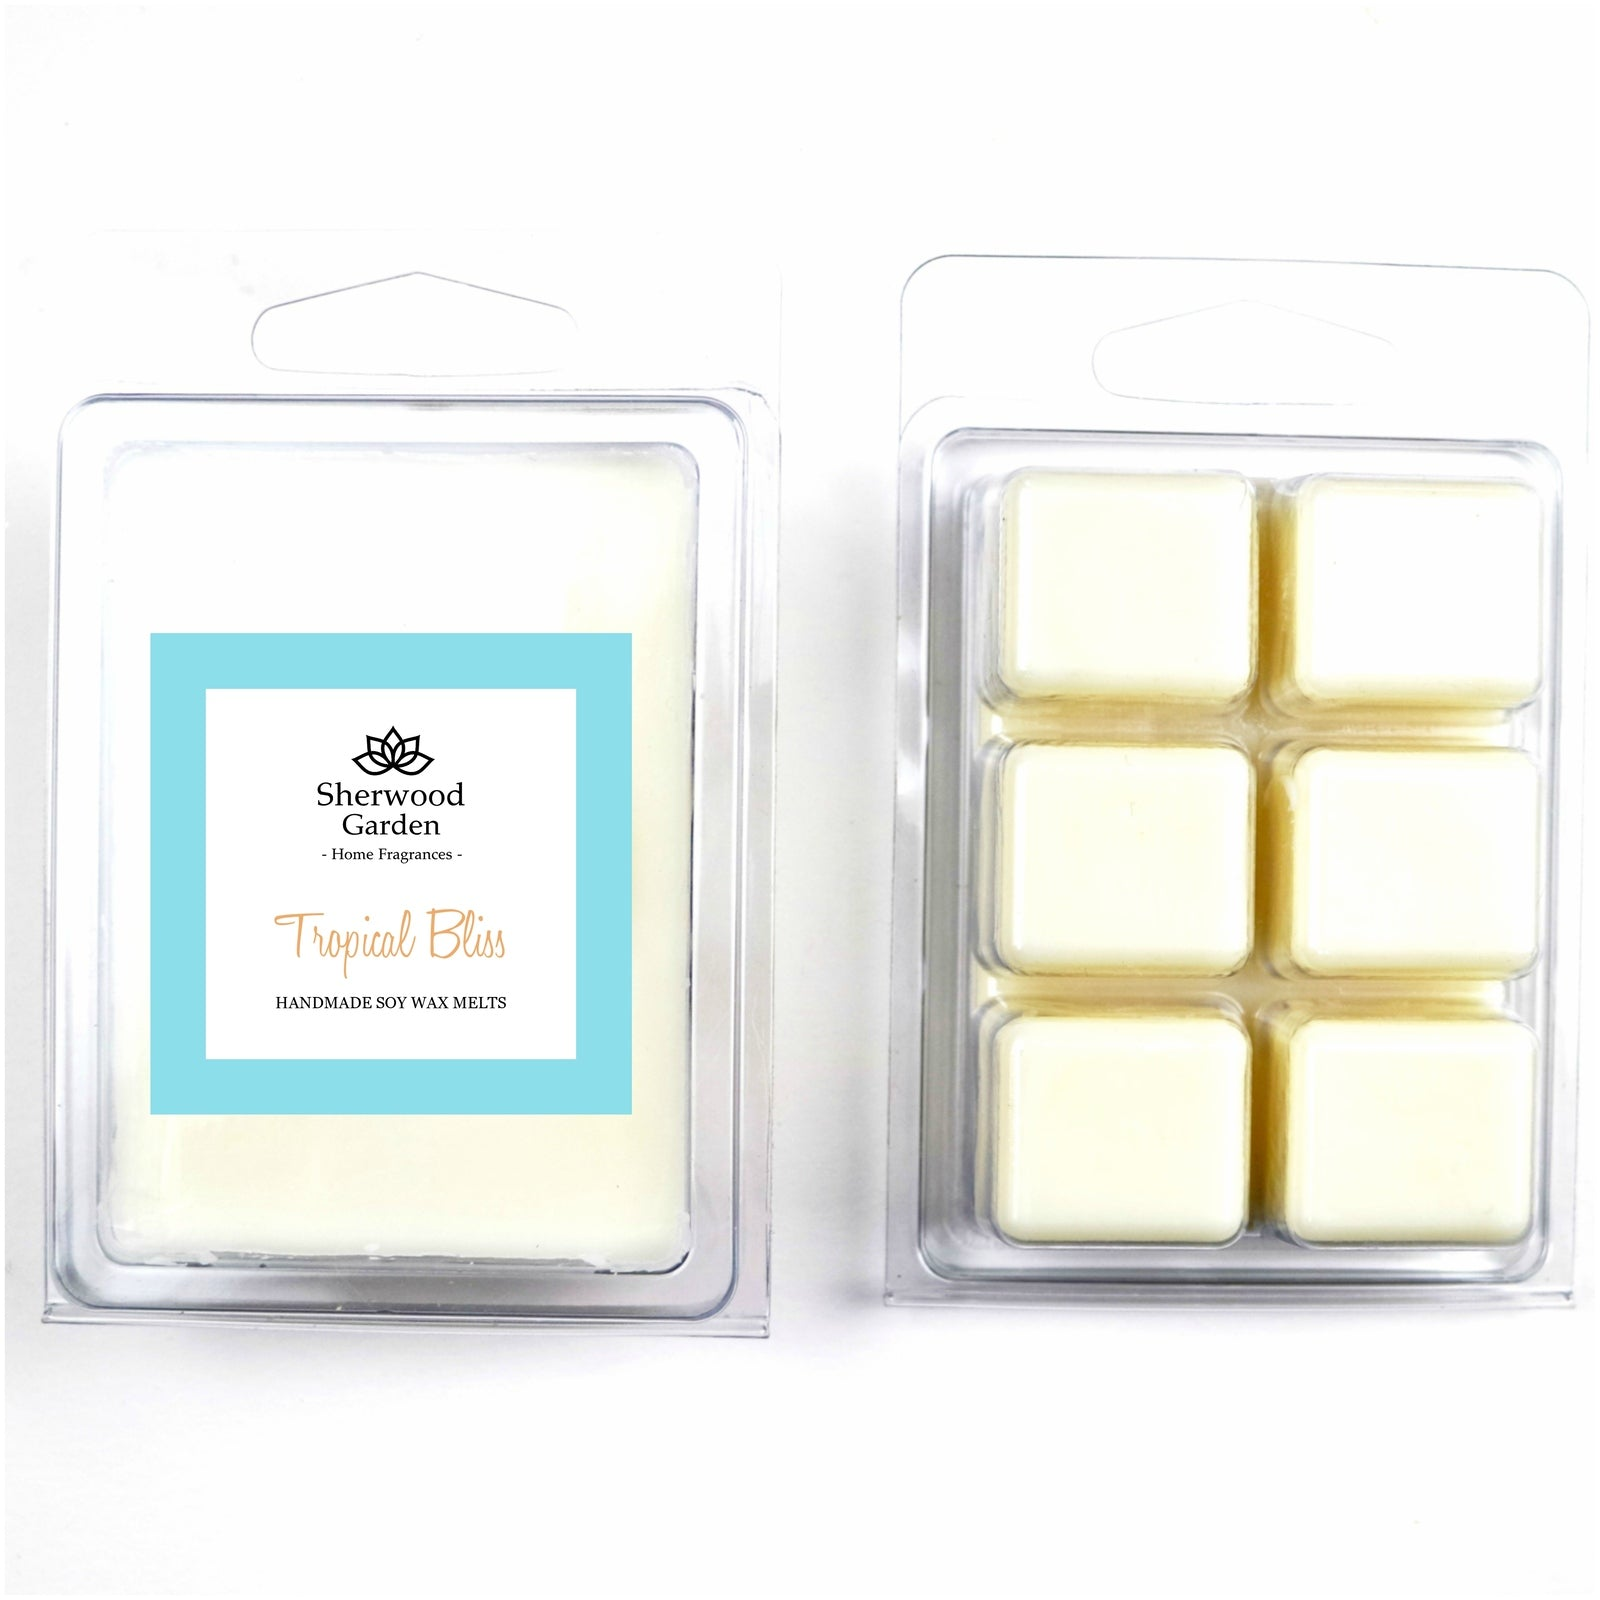 Soy Wax Melts - Tropical Bliss (Limited Edition)